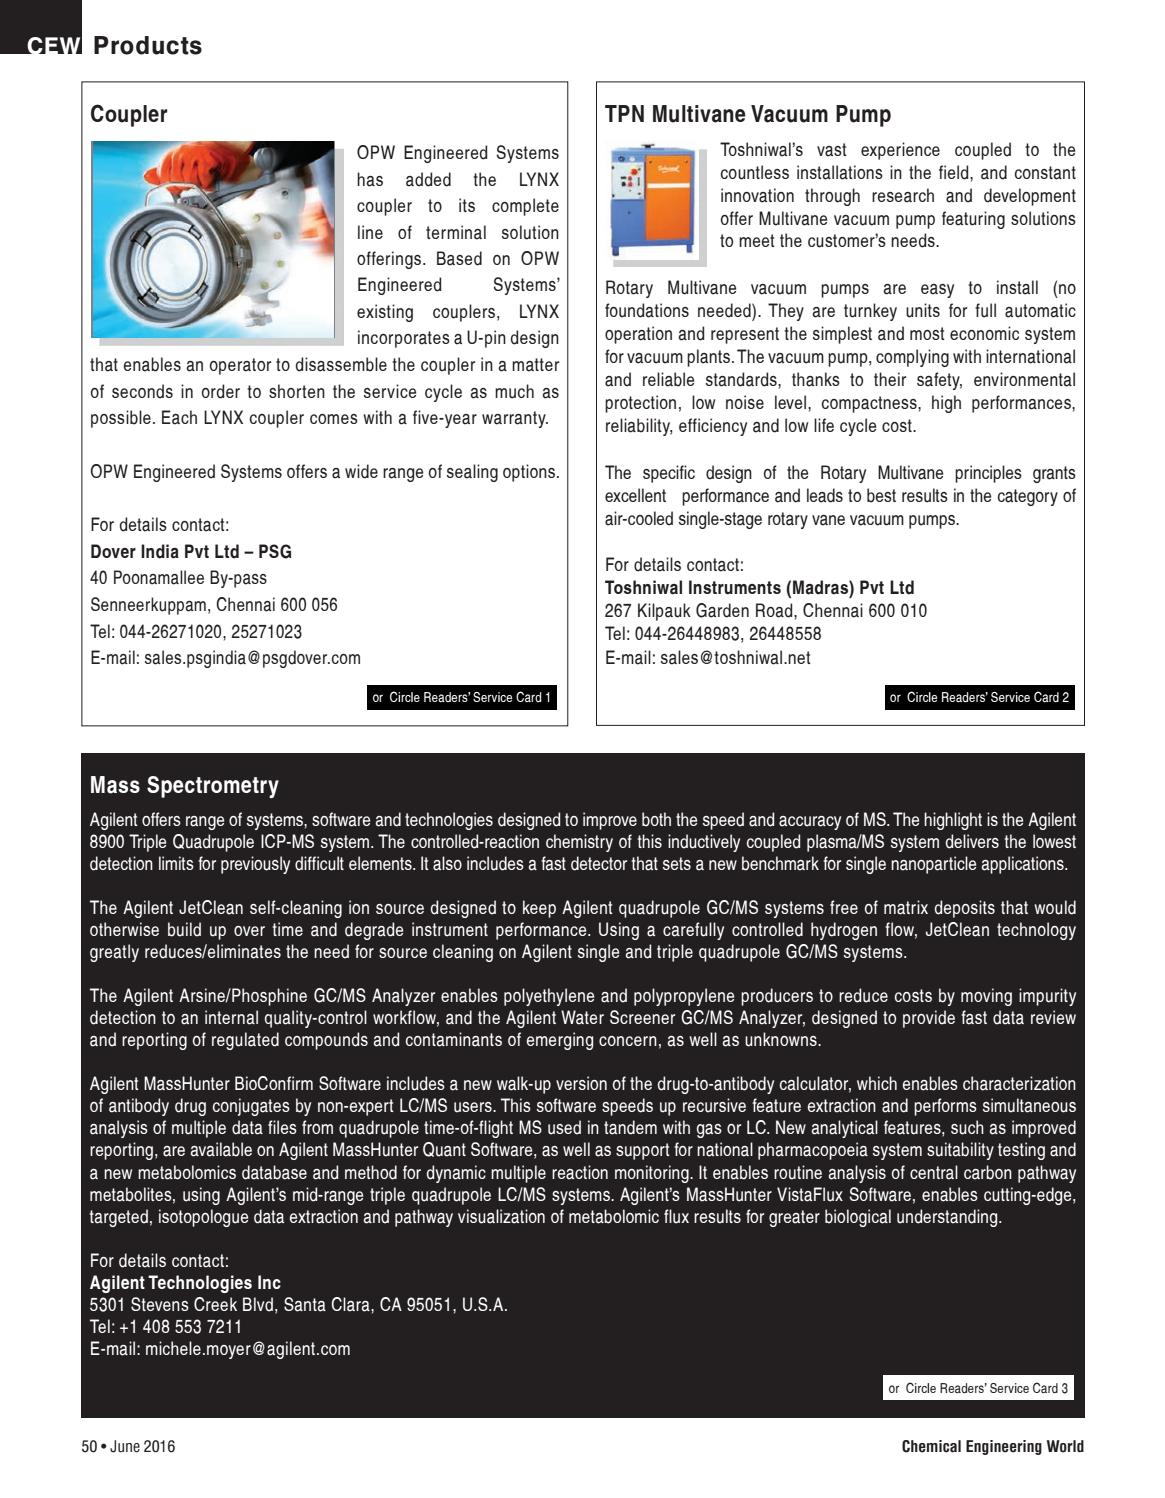 CEW JUNE 2016 by Chemical Engineering World - issuu